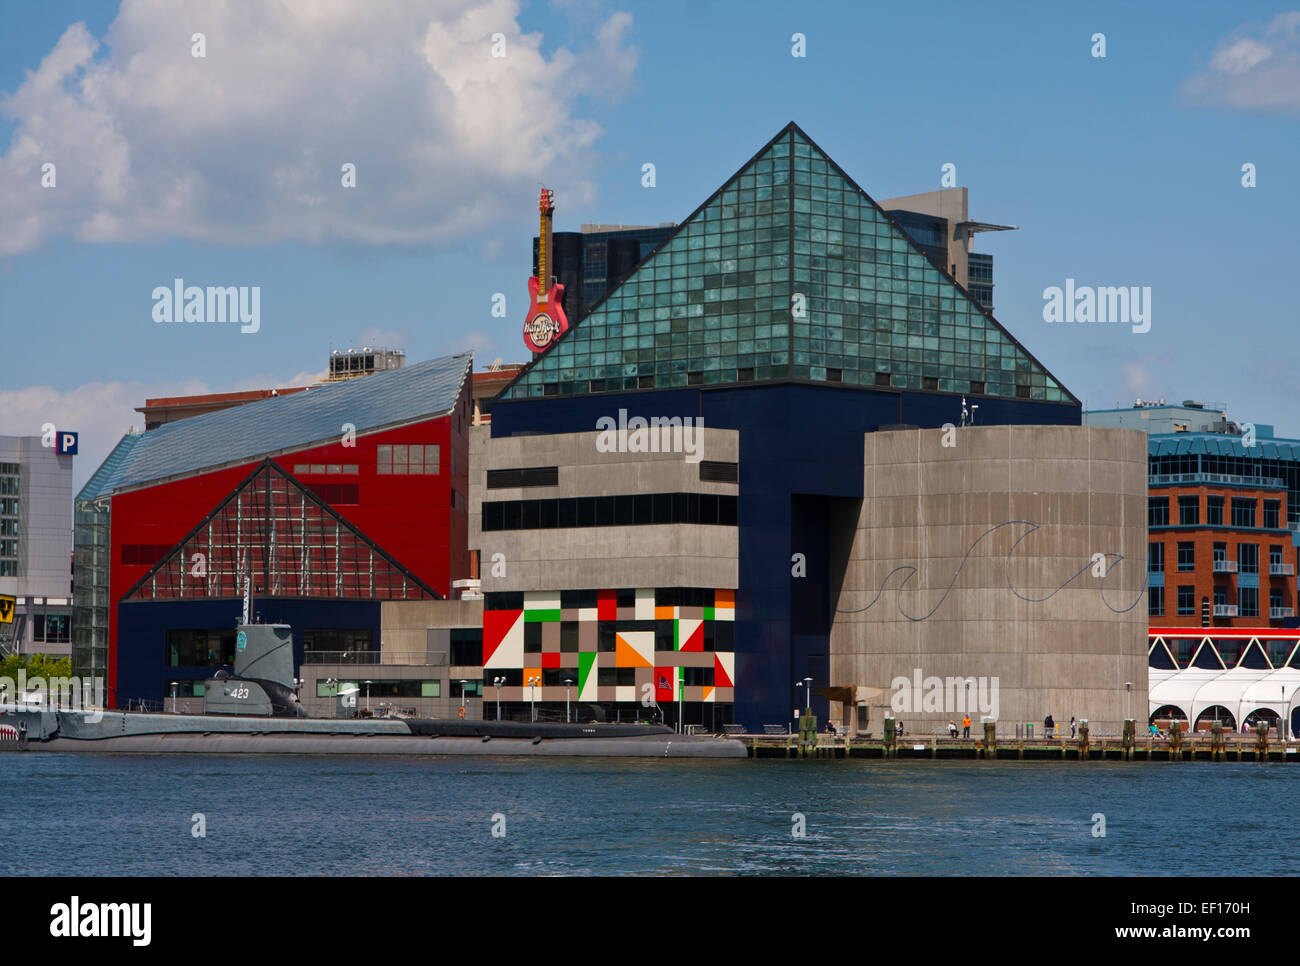 Baltimore, Maryland, The National Aquarium at Baltimore and the museum ship USS Torsk of the Historic Ships in Baltimore. - Stock Image